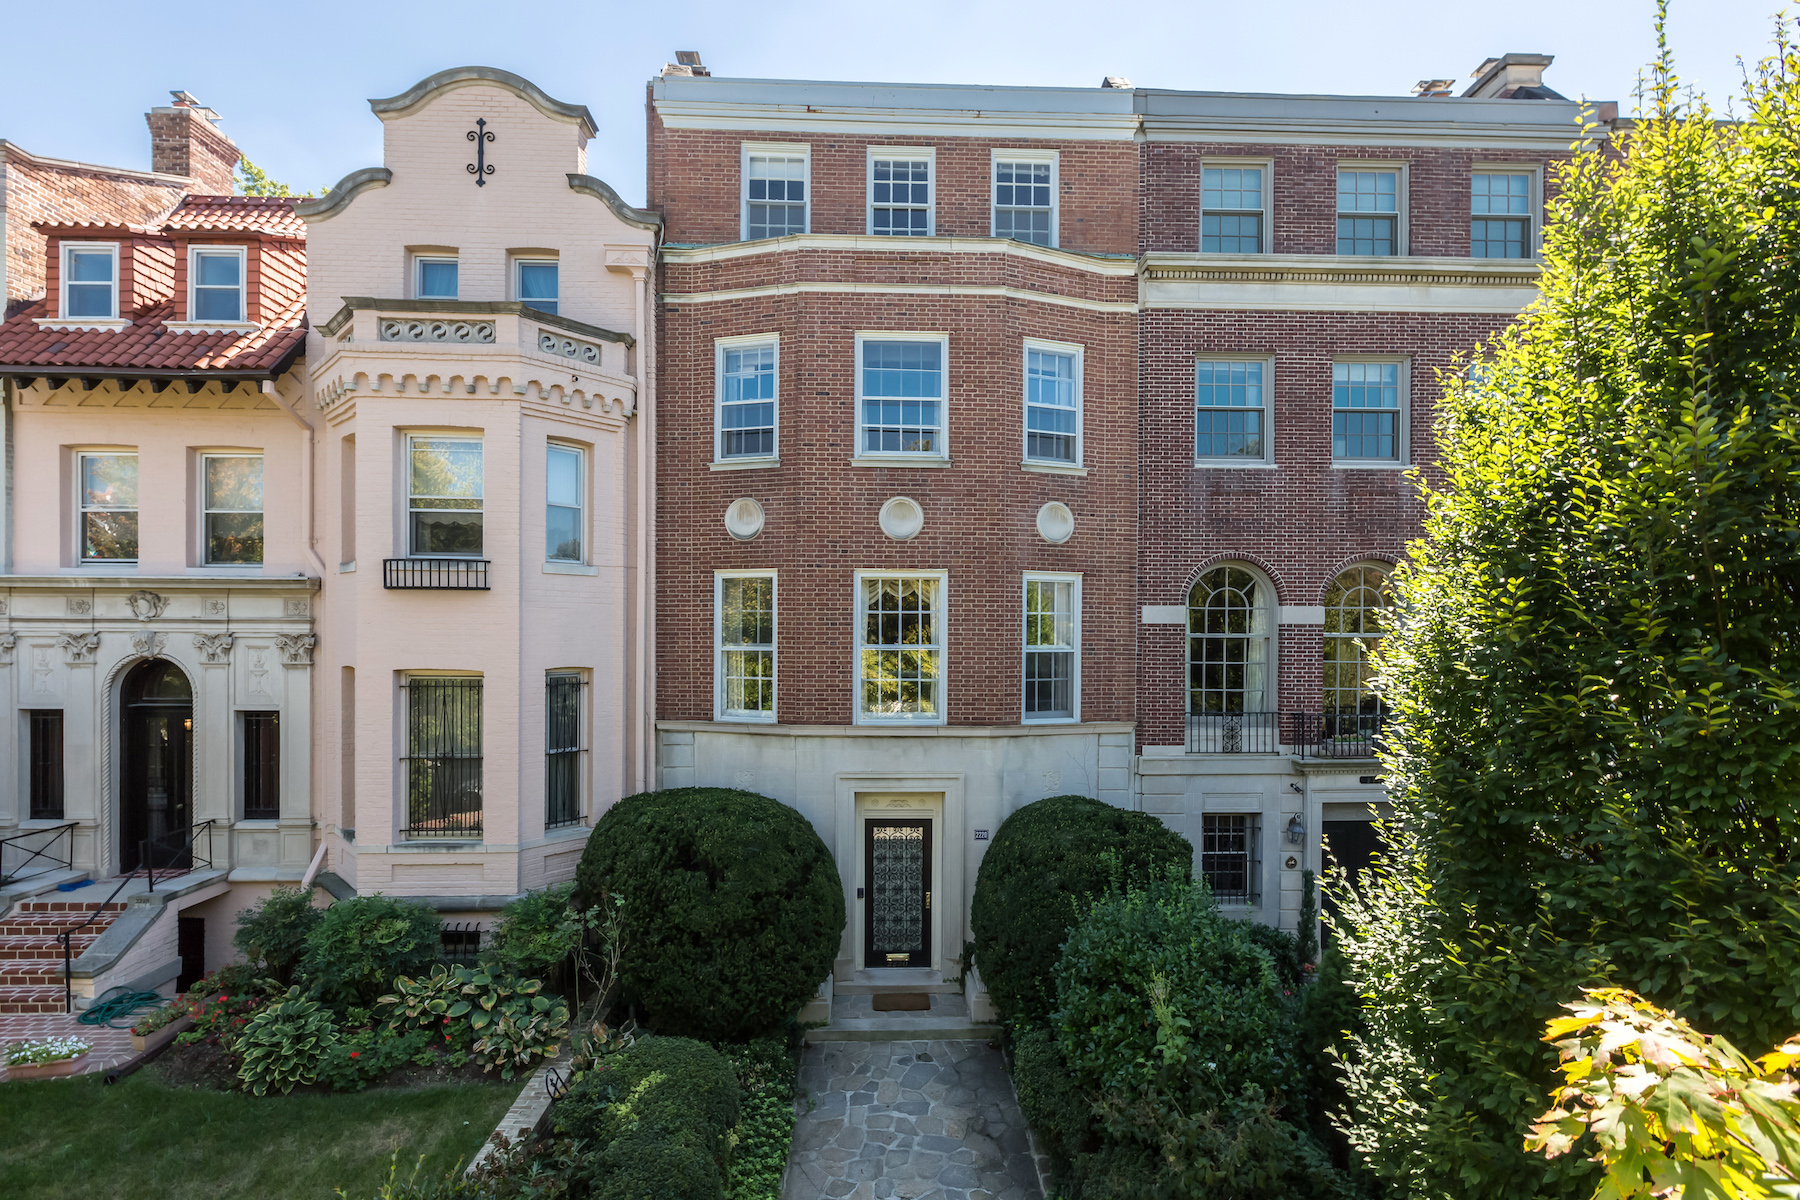 Townhouse for Sale at Kalorama 2220 Wyoming Avenue Nw Washington, District Of Columbia 20008 United States